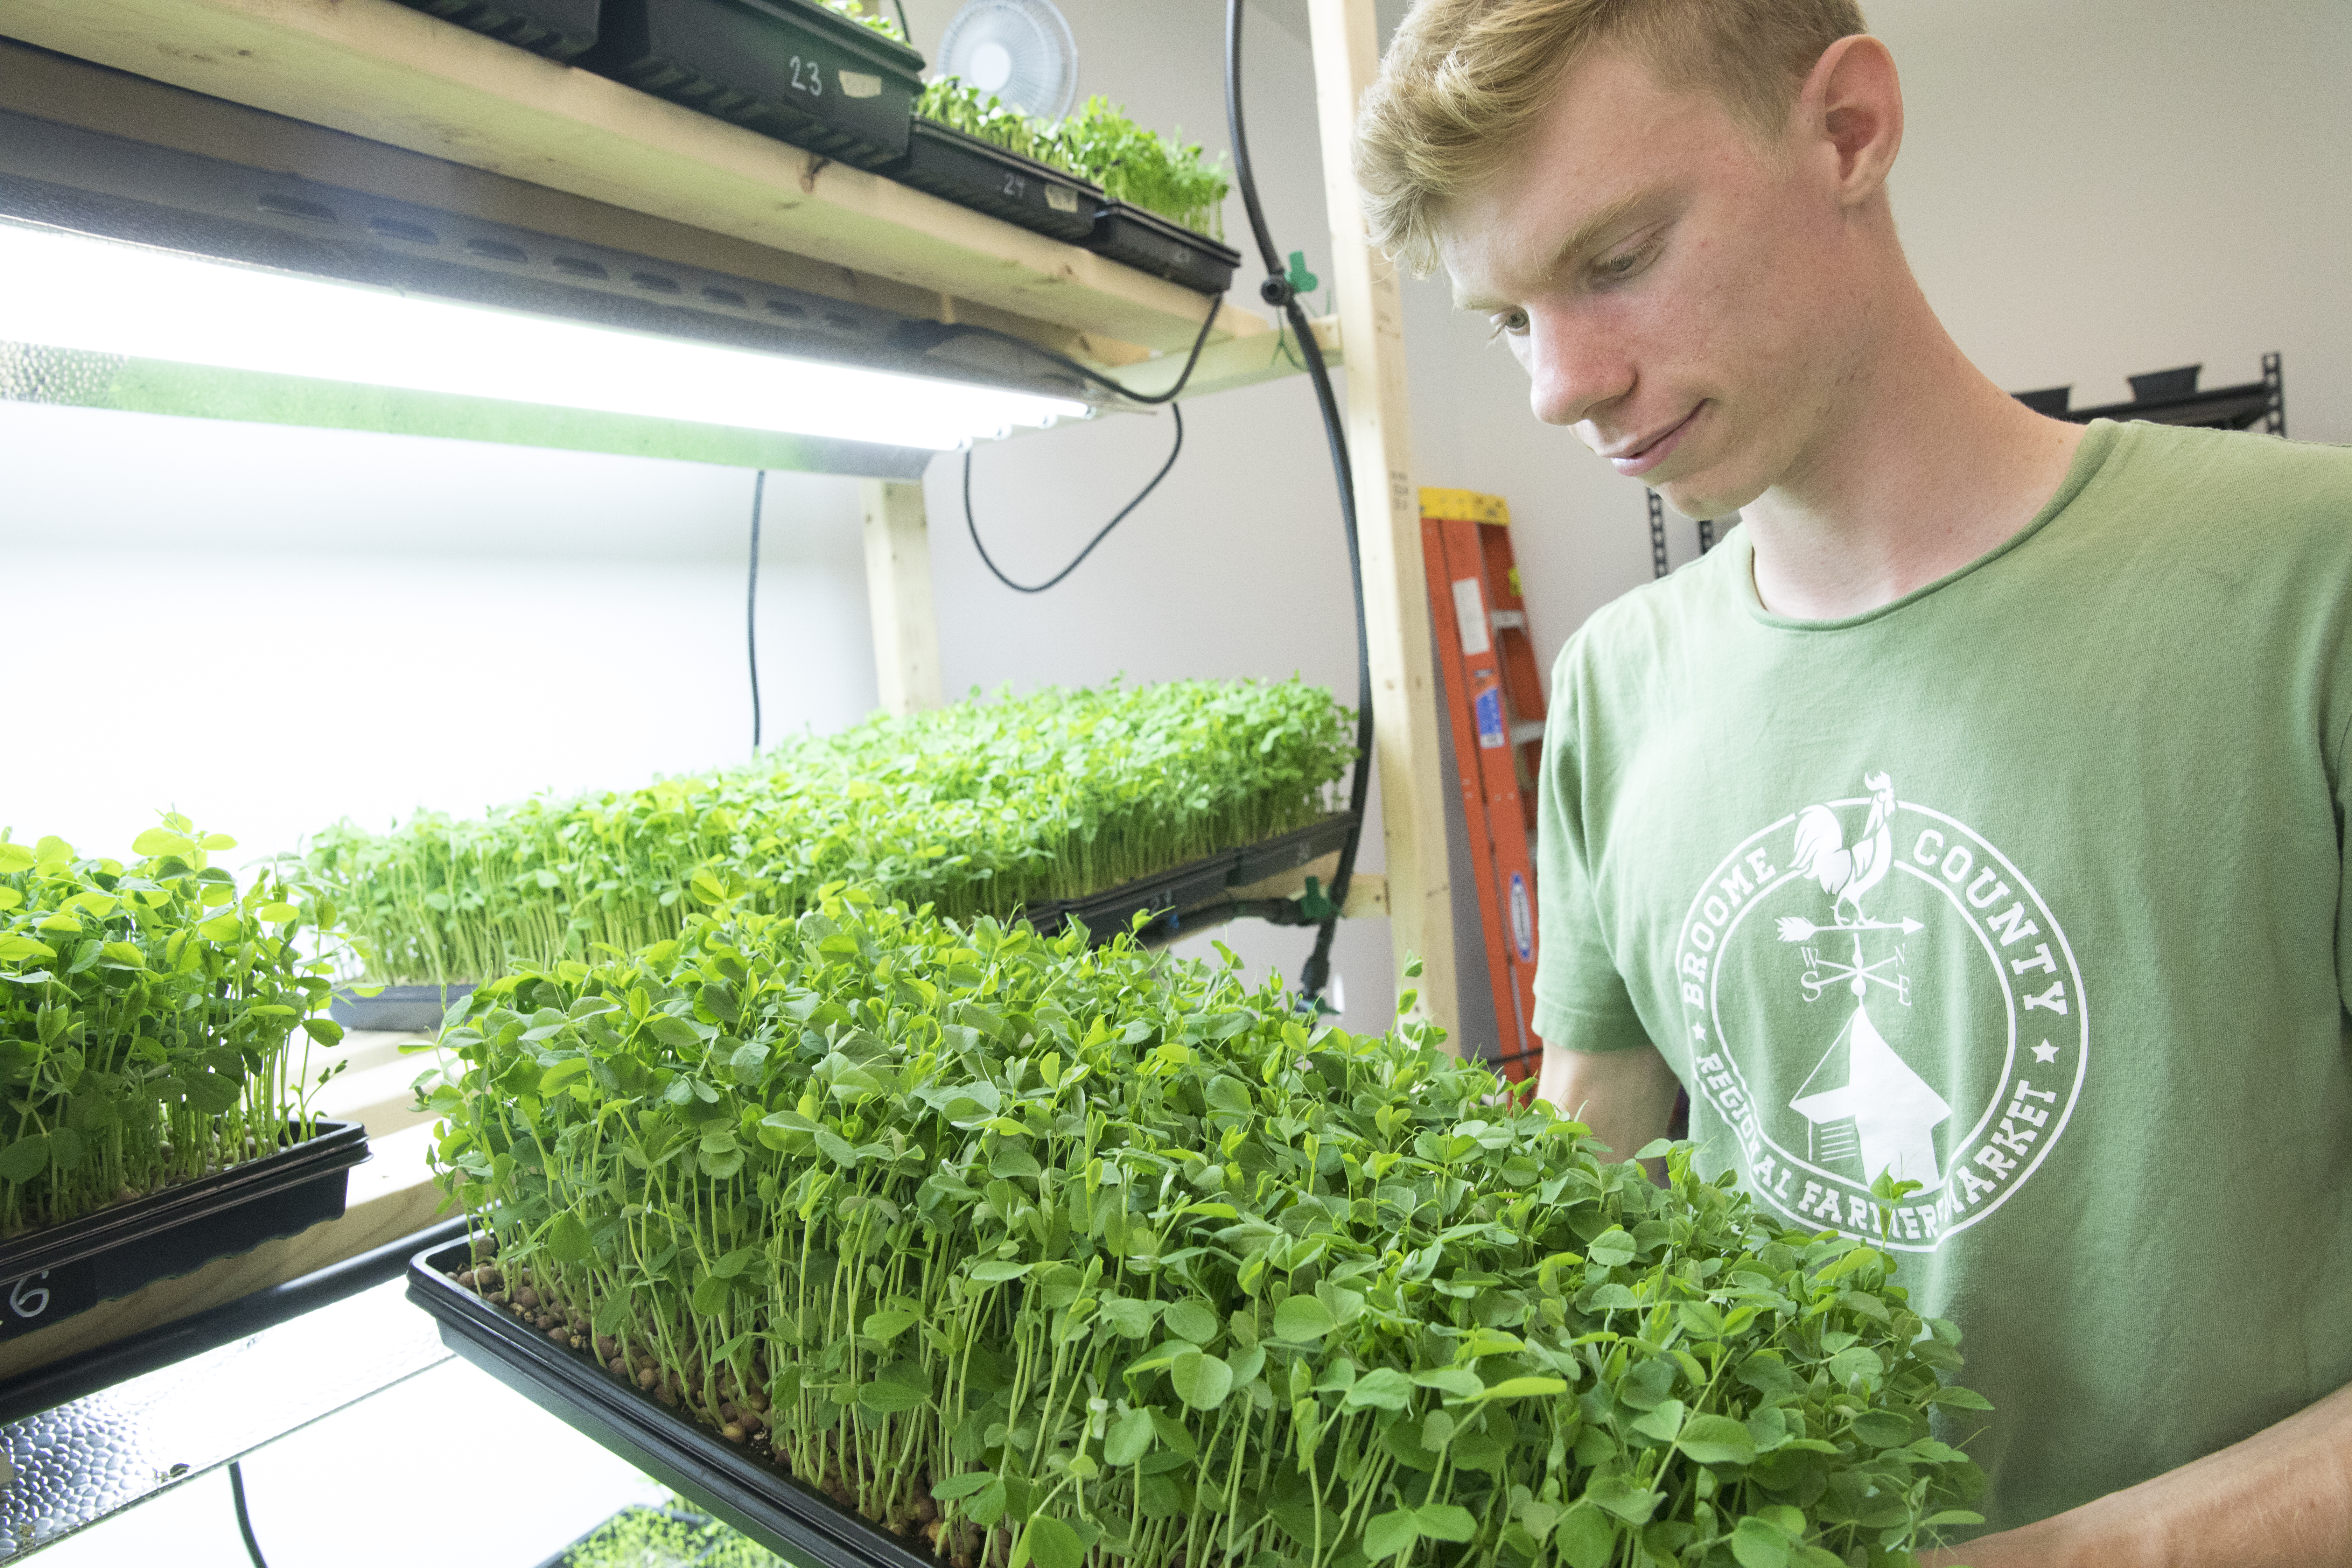 Infiniti Greens founder selected for national competition